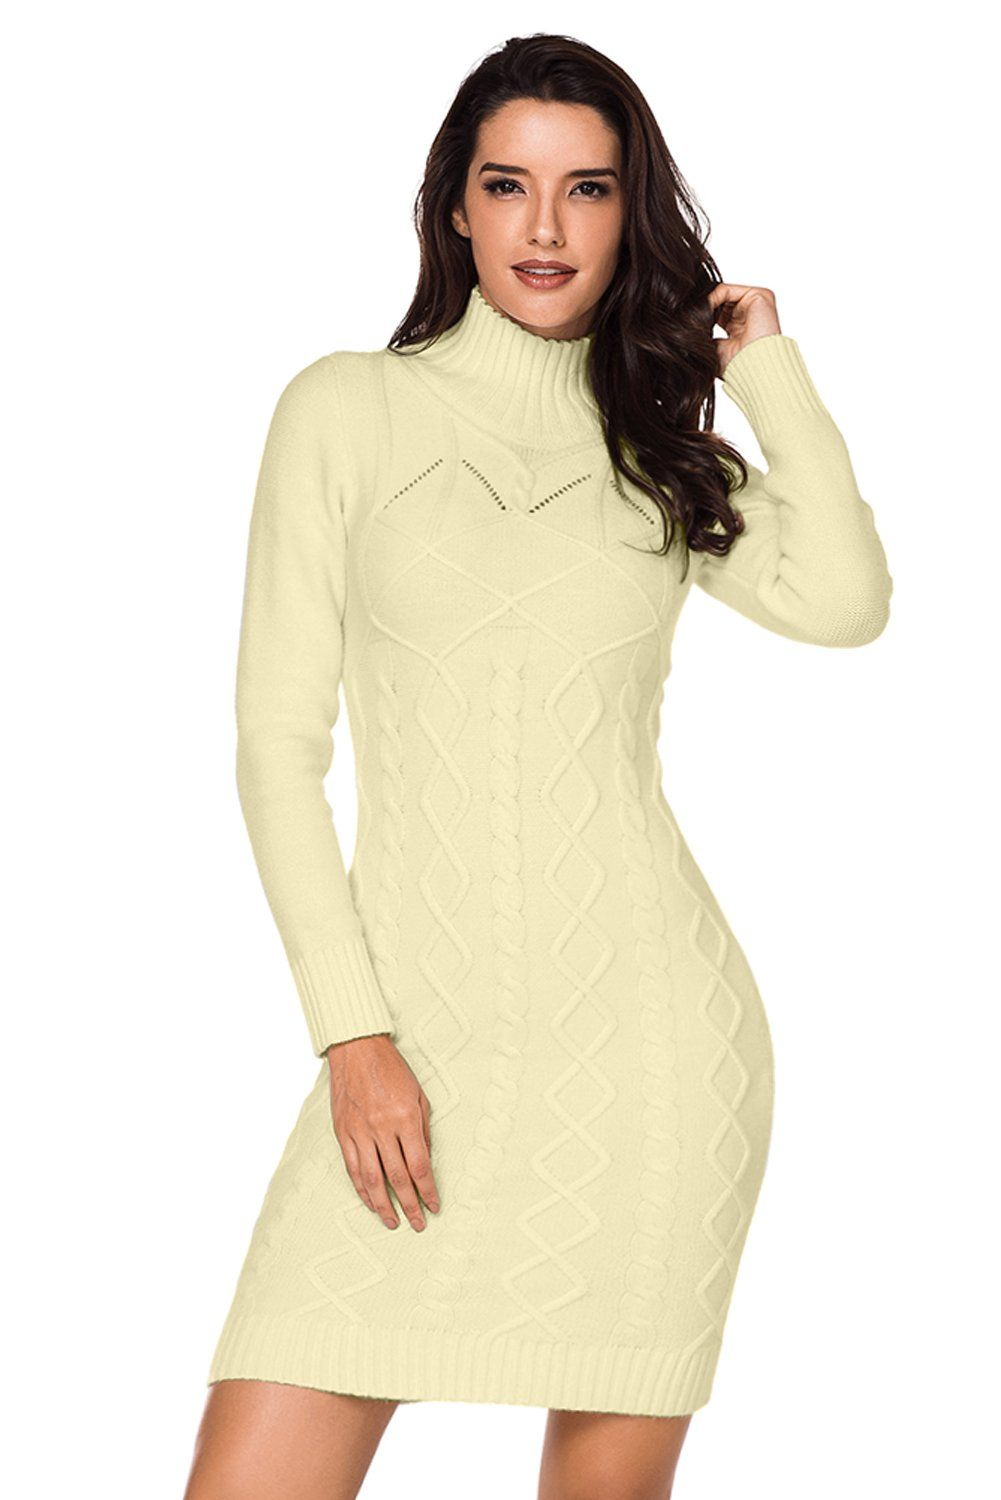 Robe Pull Femme Robe Pull Femme Tricot De Cable Abricot Col Roule The Market